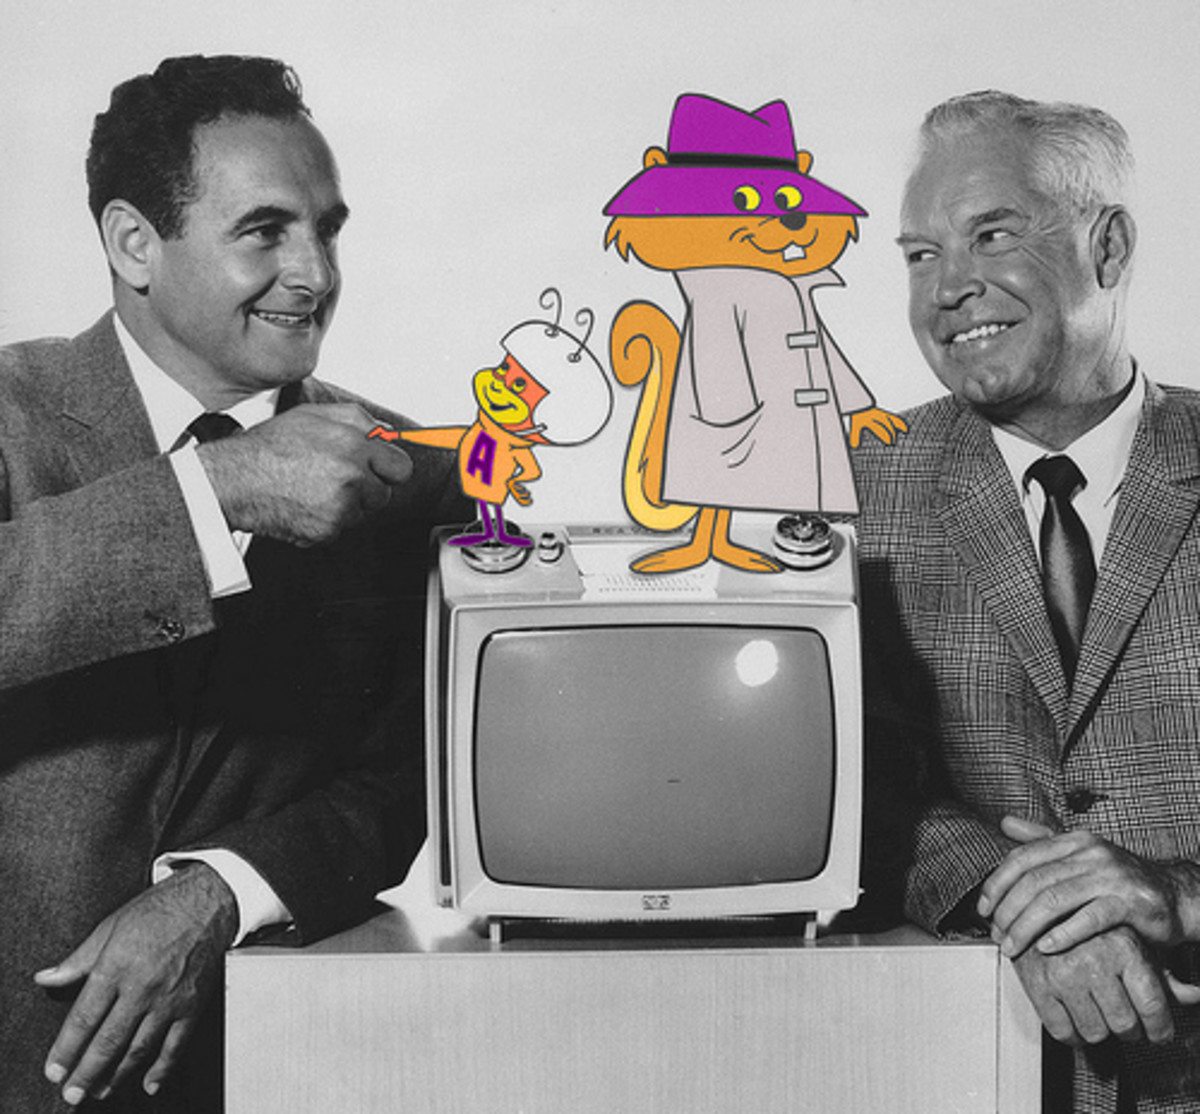 A publicity image of William Hanna (right) and Joseph Barbera (left) with Atom Ant and Secret Squirrel